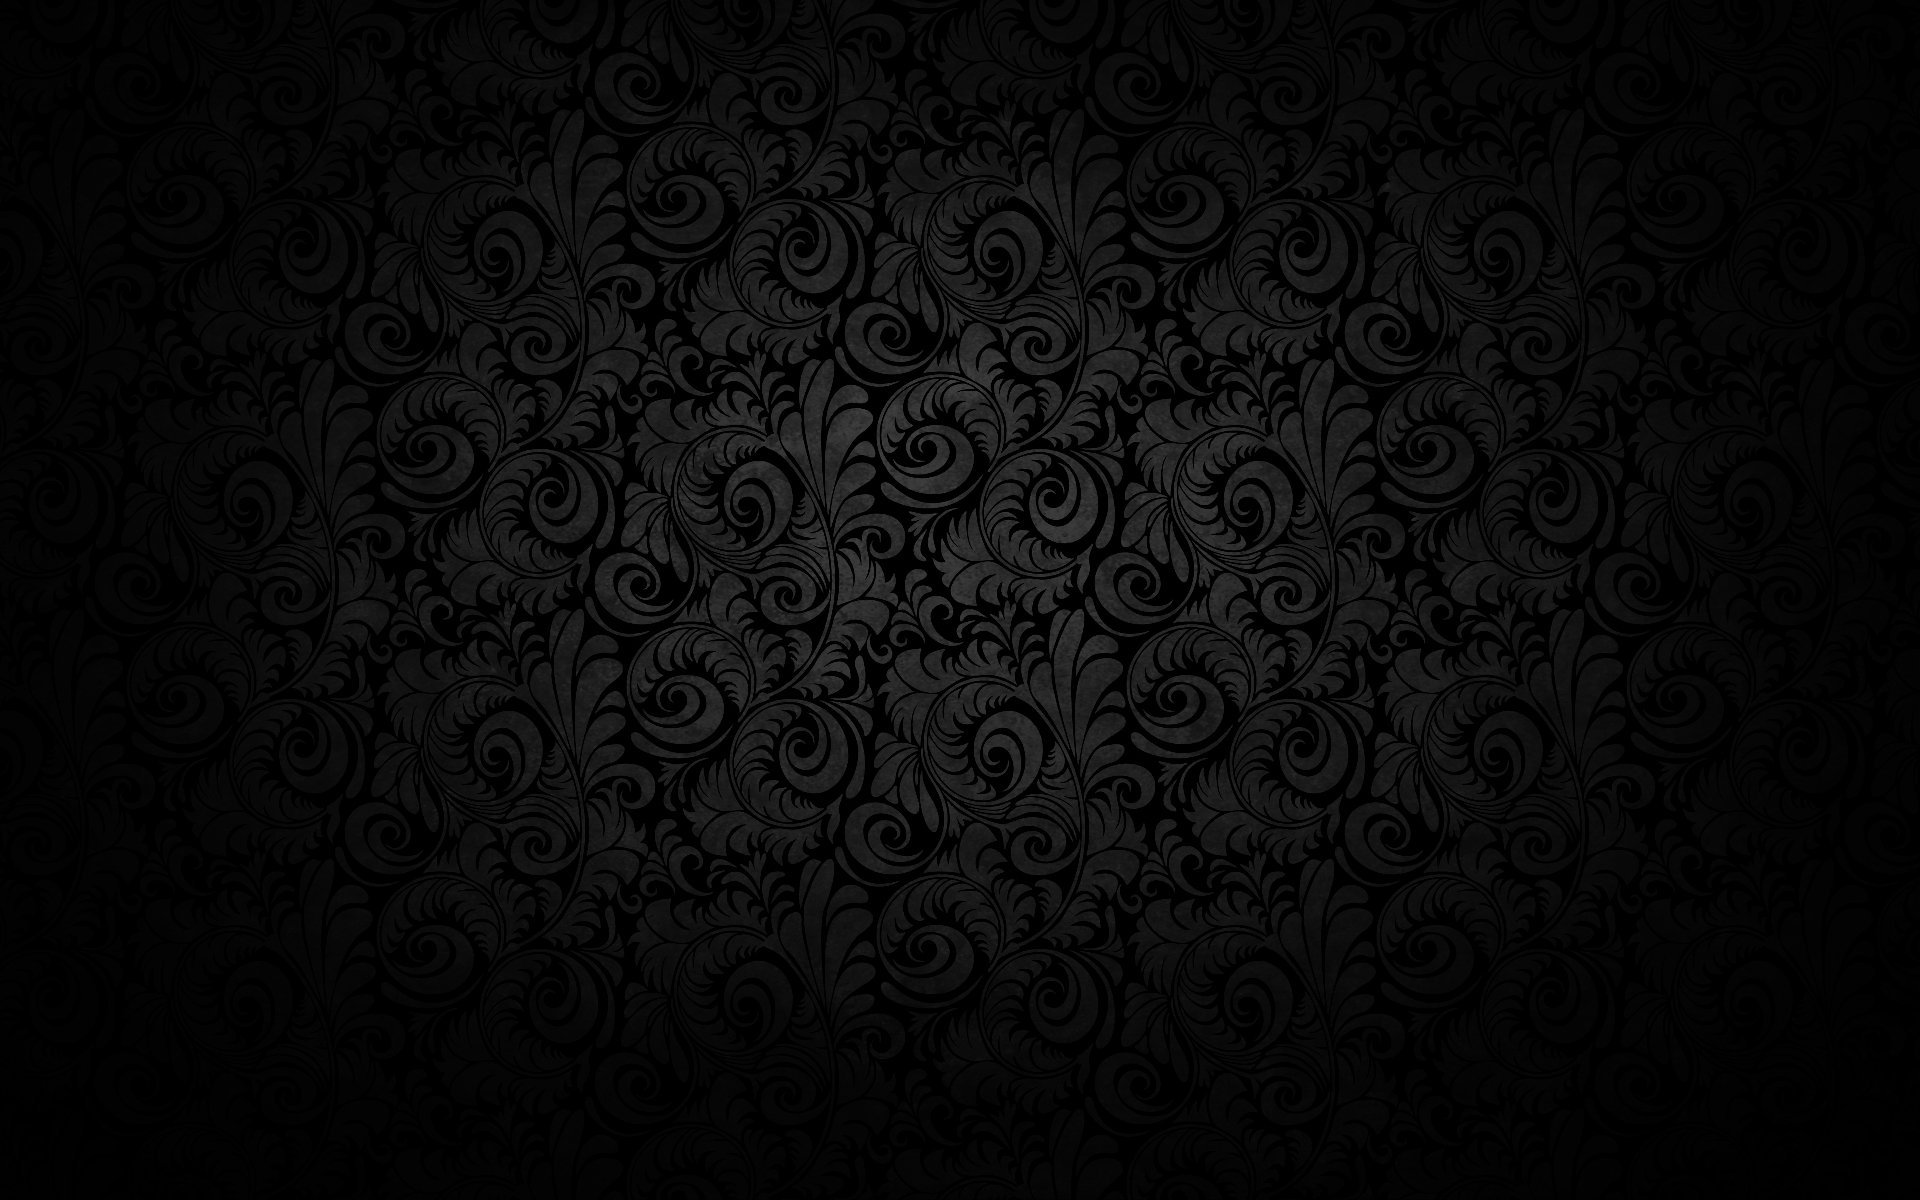 background, cool, atimbw4je, black